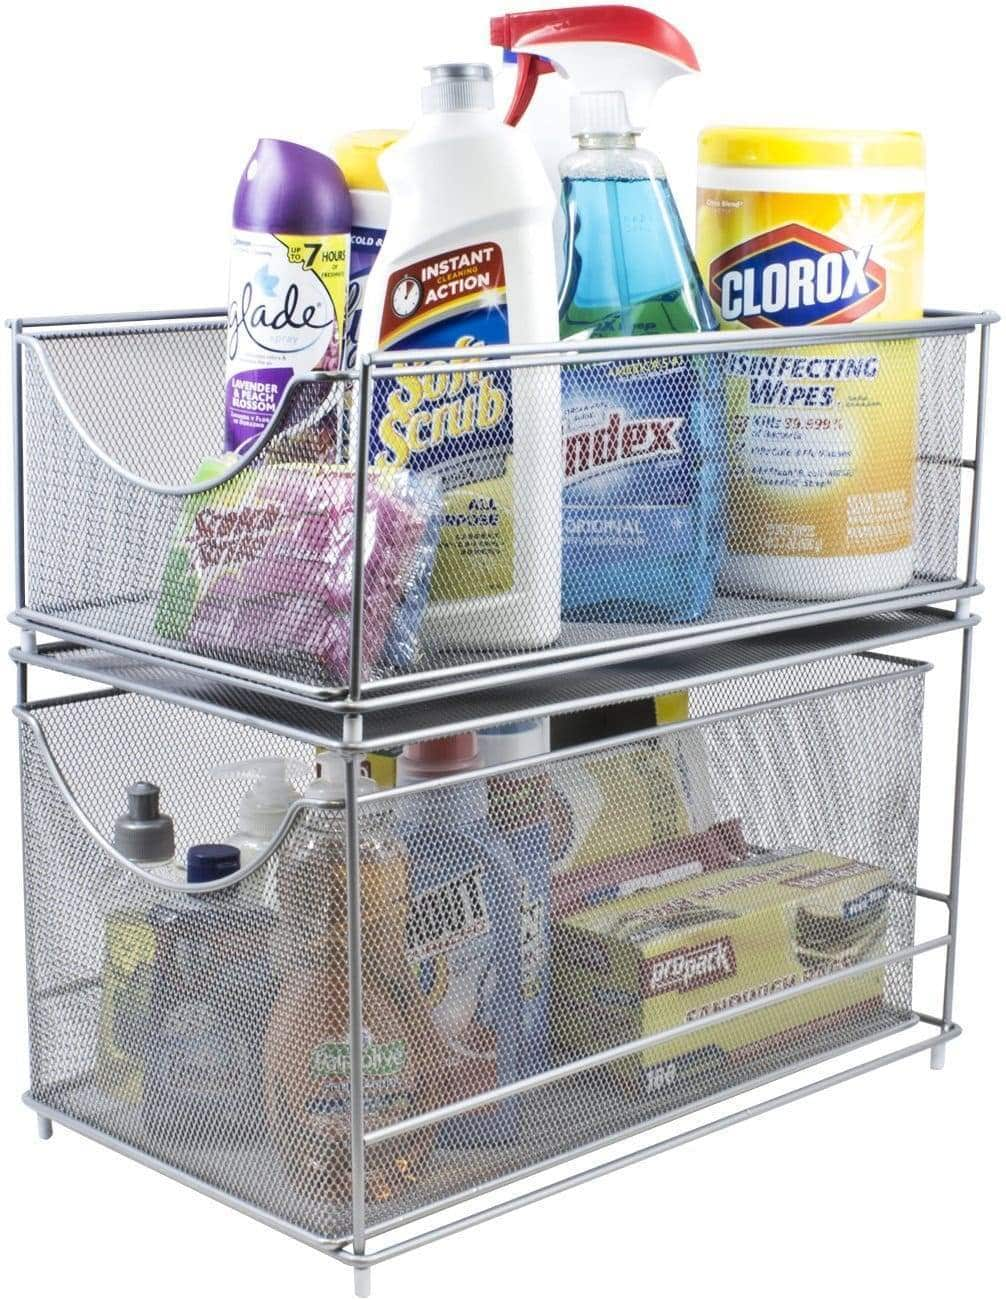 Purchase sorbus cabinet organizer set mesh storage organizer with pull out drawers ideal for countertop cabinet pantry under the sink desktop and more silver two piece set